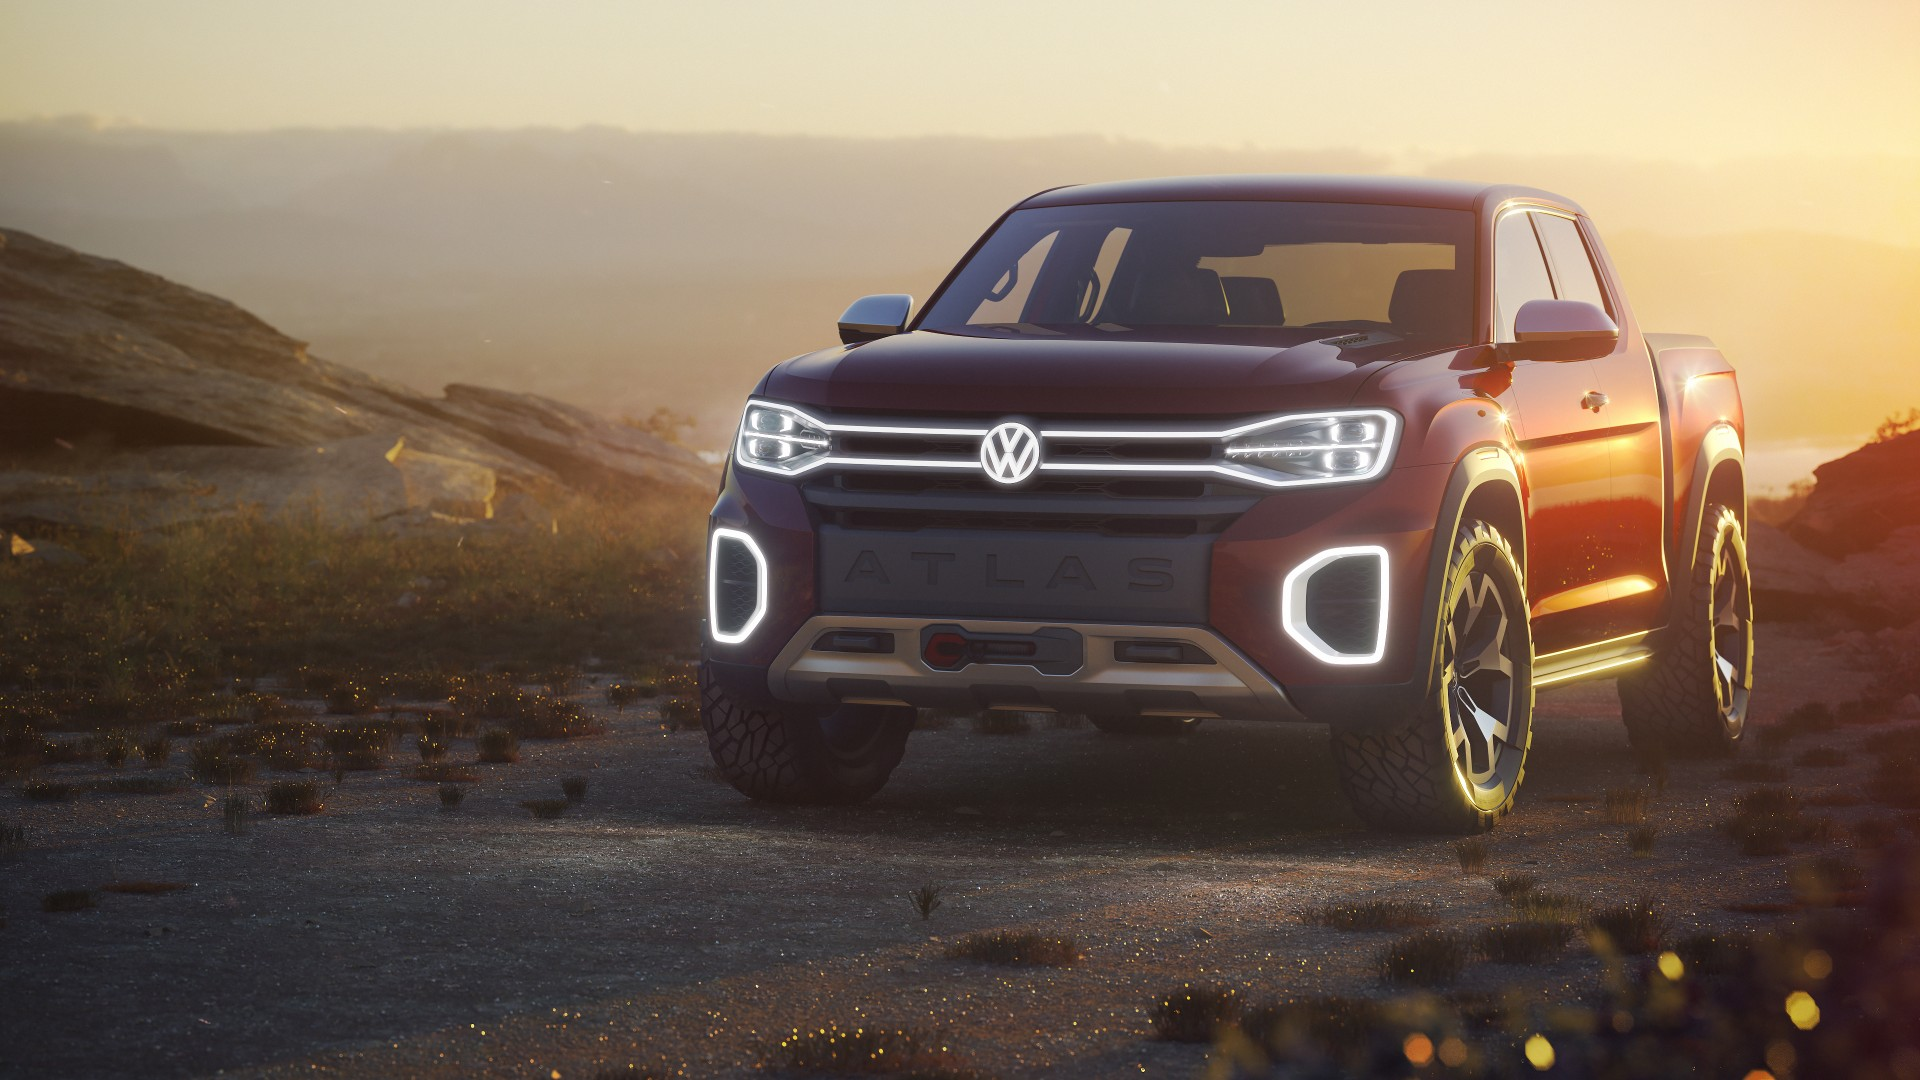 volkswagen atlas tanoak pickup truck concept  wallpaper hd car wallpapers id